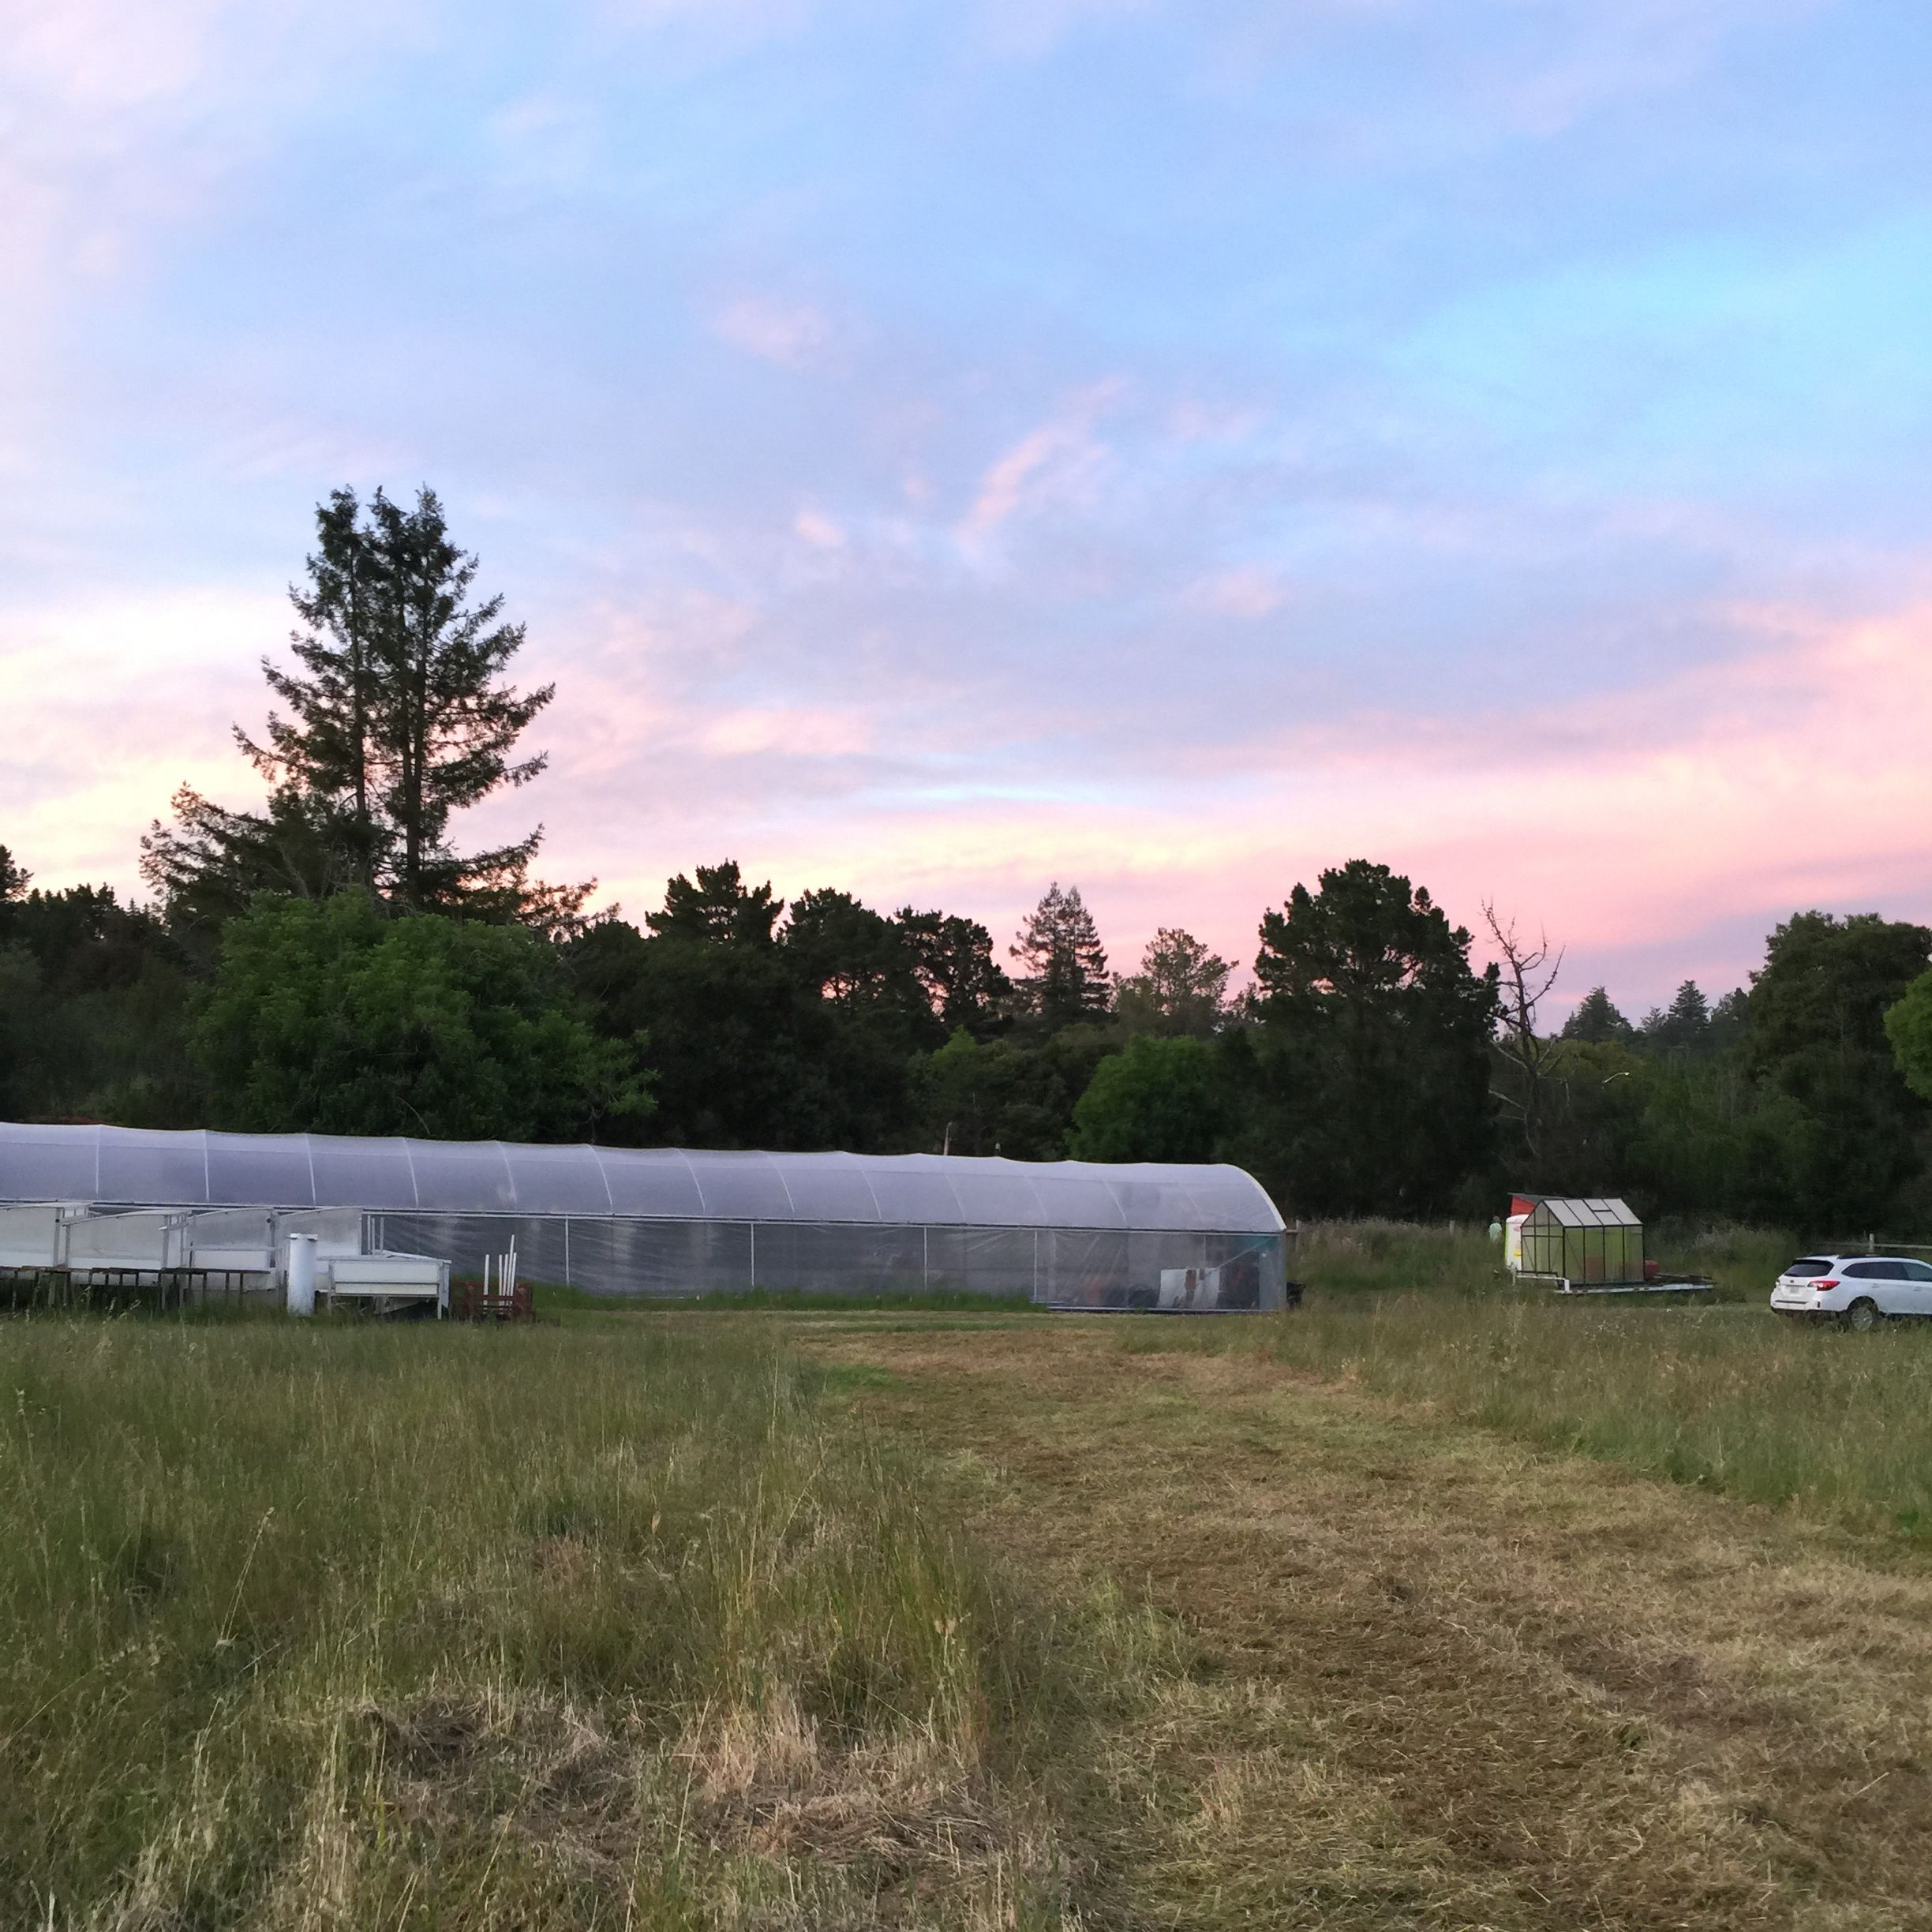 The fram fields with the cover crop and the greenhouse and sunset sky in the background.